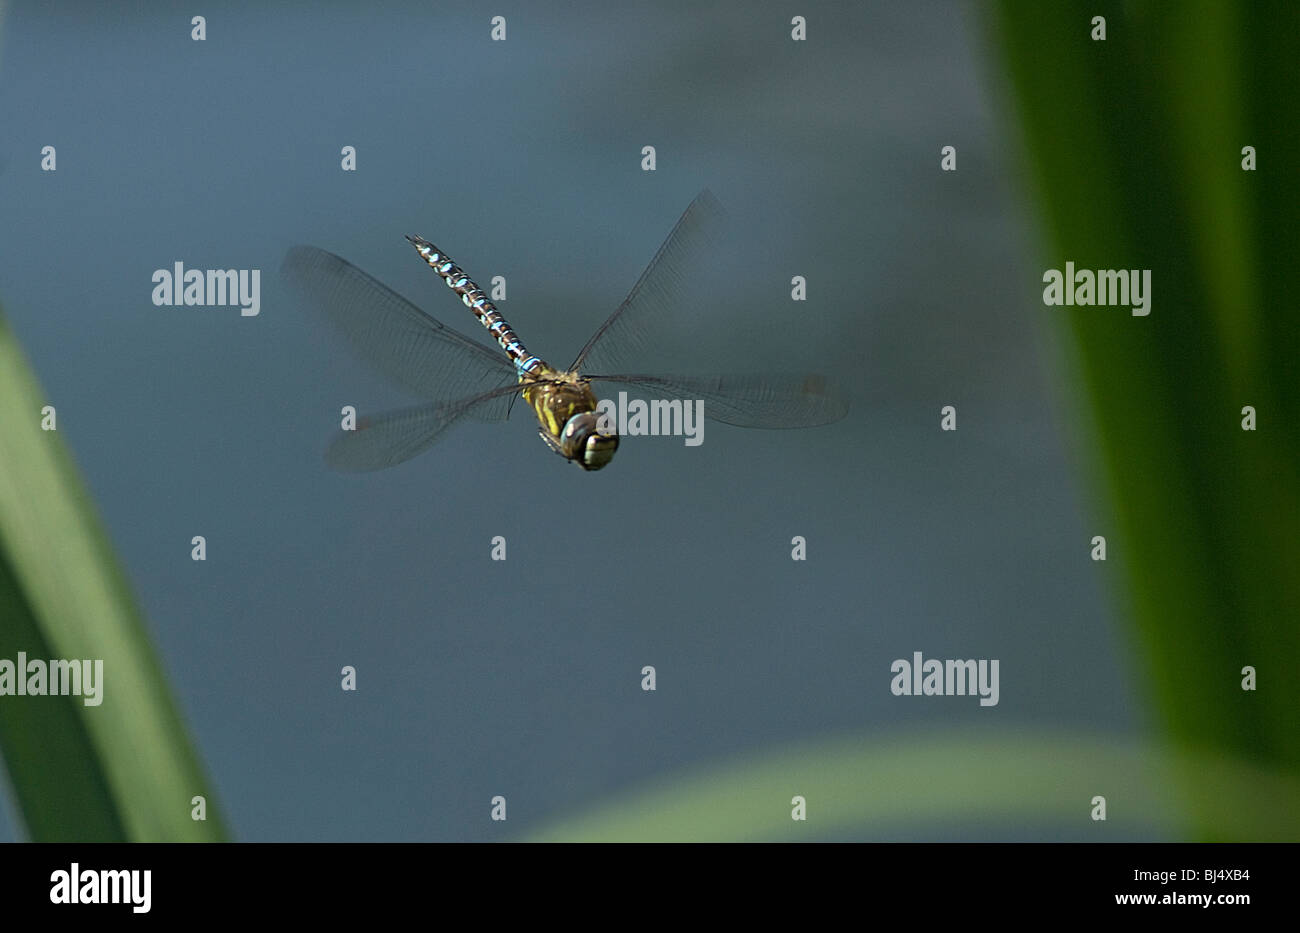 Aeshna Aeshna juncea, commune, planant Photo Stock